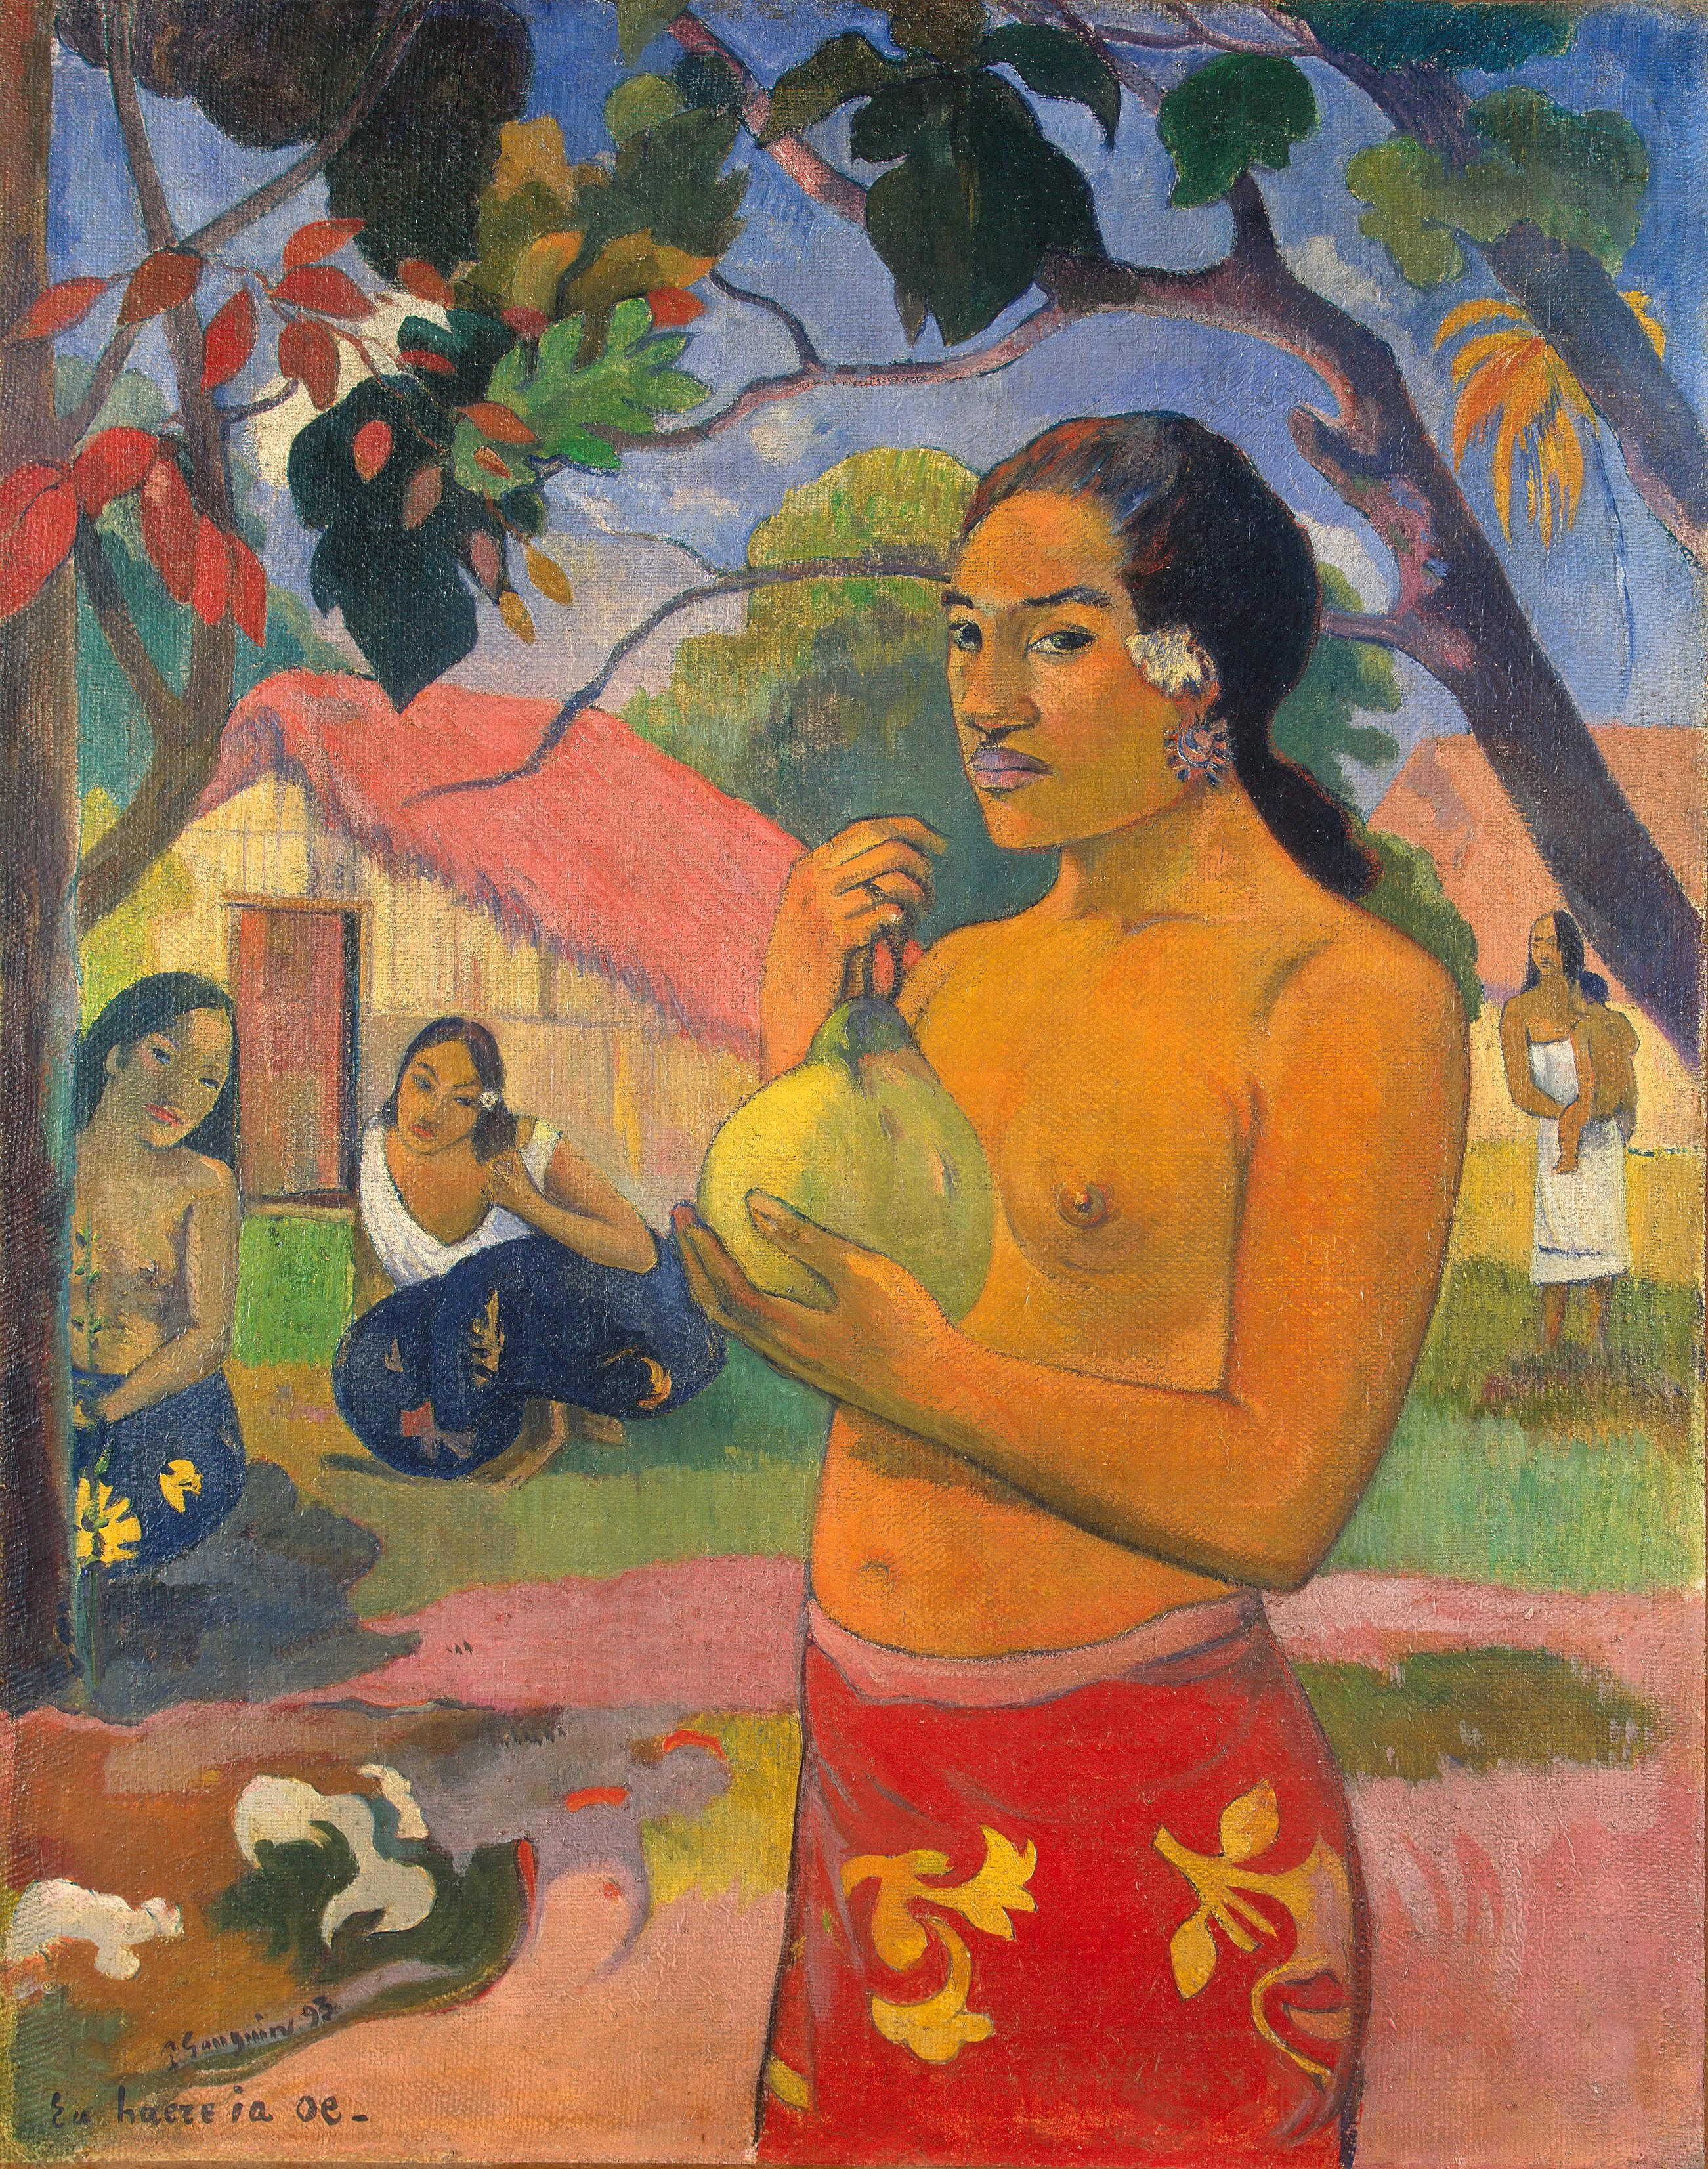 http://upload.wikimedia.org/wikipedia/commons/f/f1/Paul_Gauguin_128.jpg